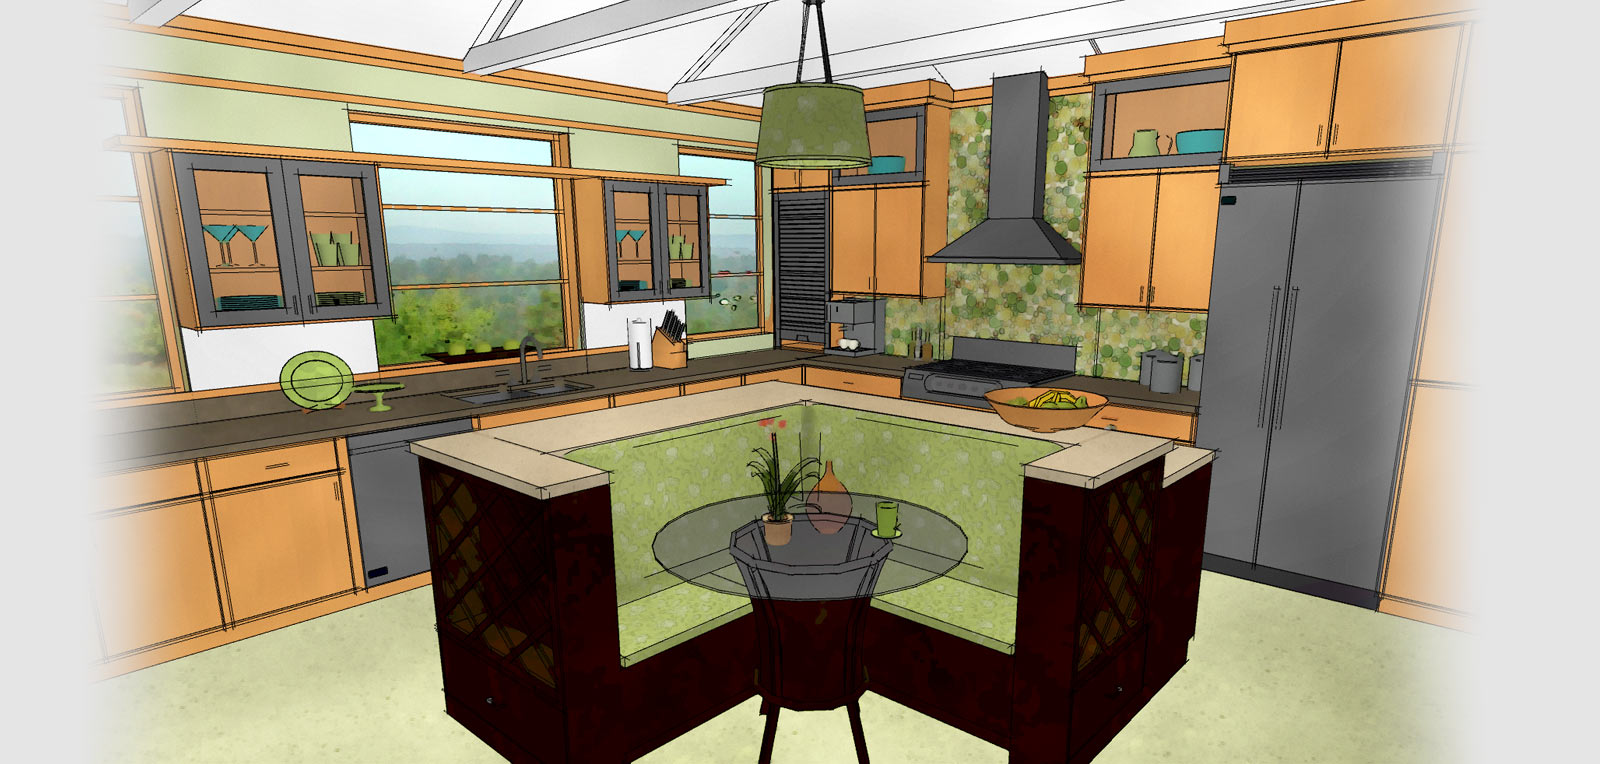 kitchen bath kitchen remodel app Technical drawing of a kitchen generated by Home Designer